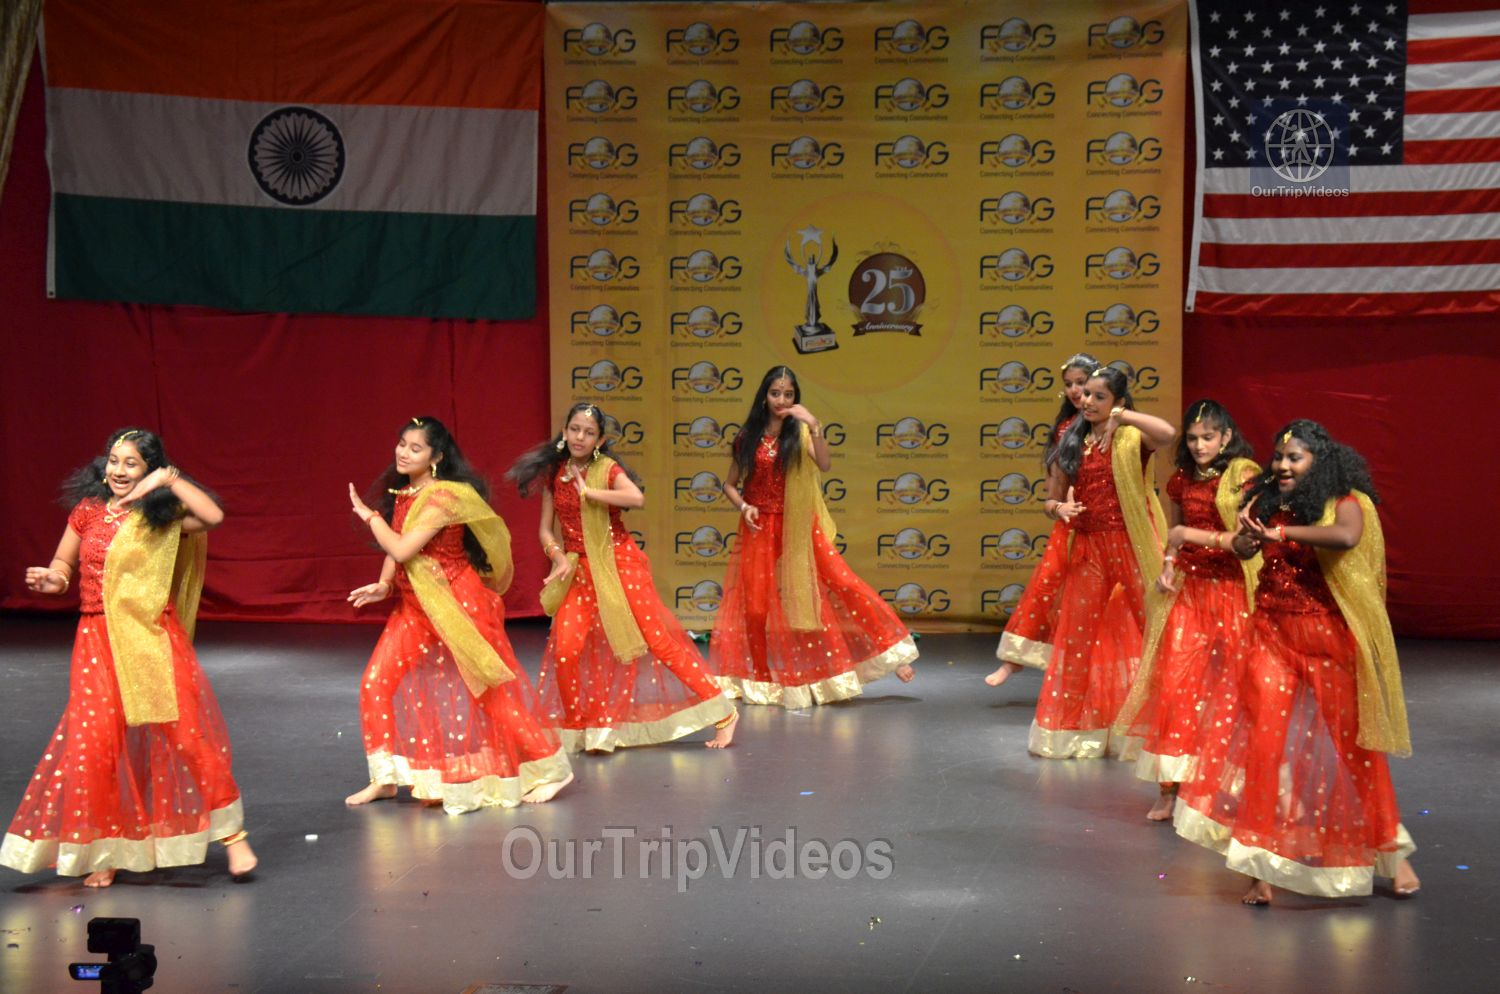 FOG Republic Day celebration, Santa Clara, CA, USA - Picture 12 of 25